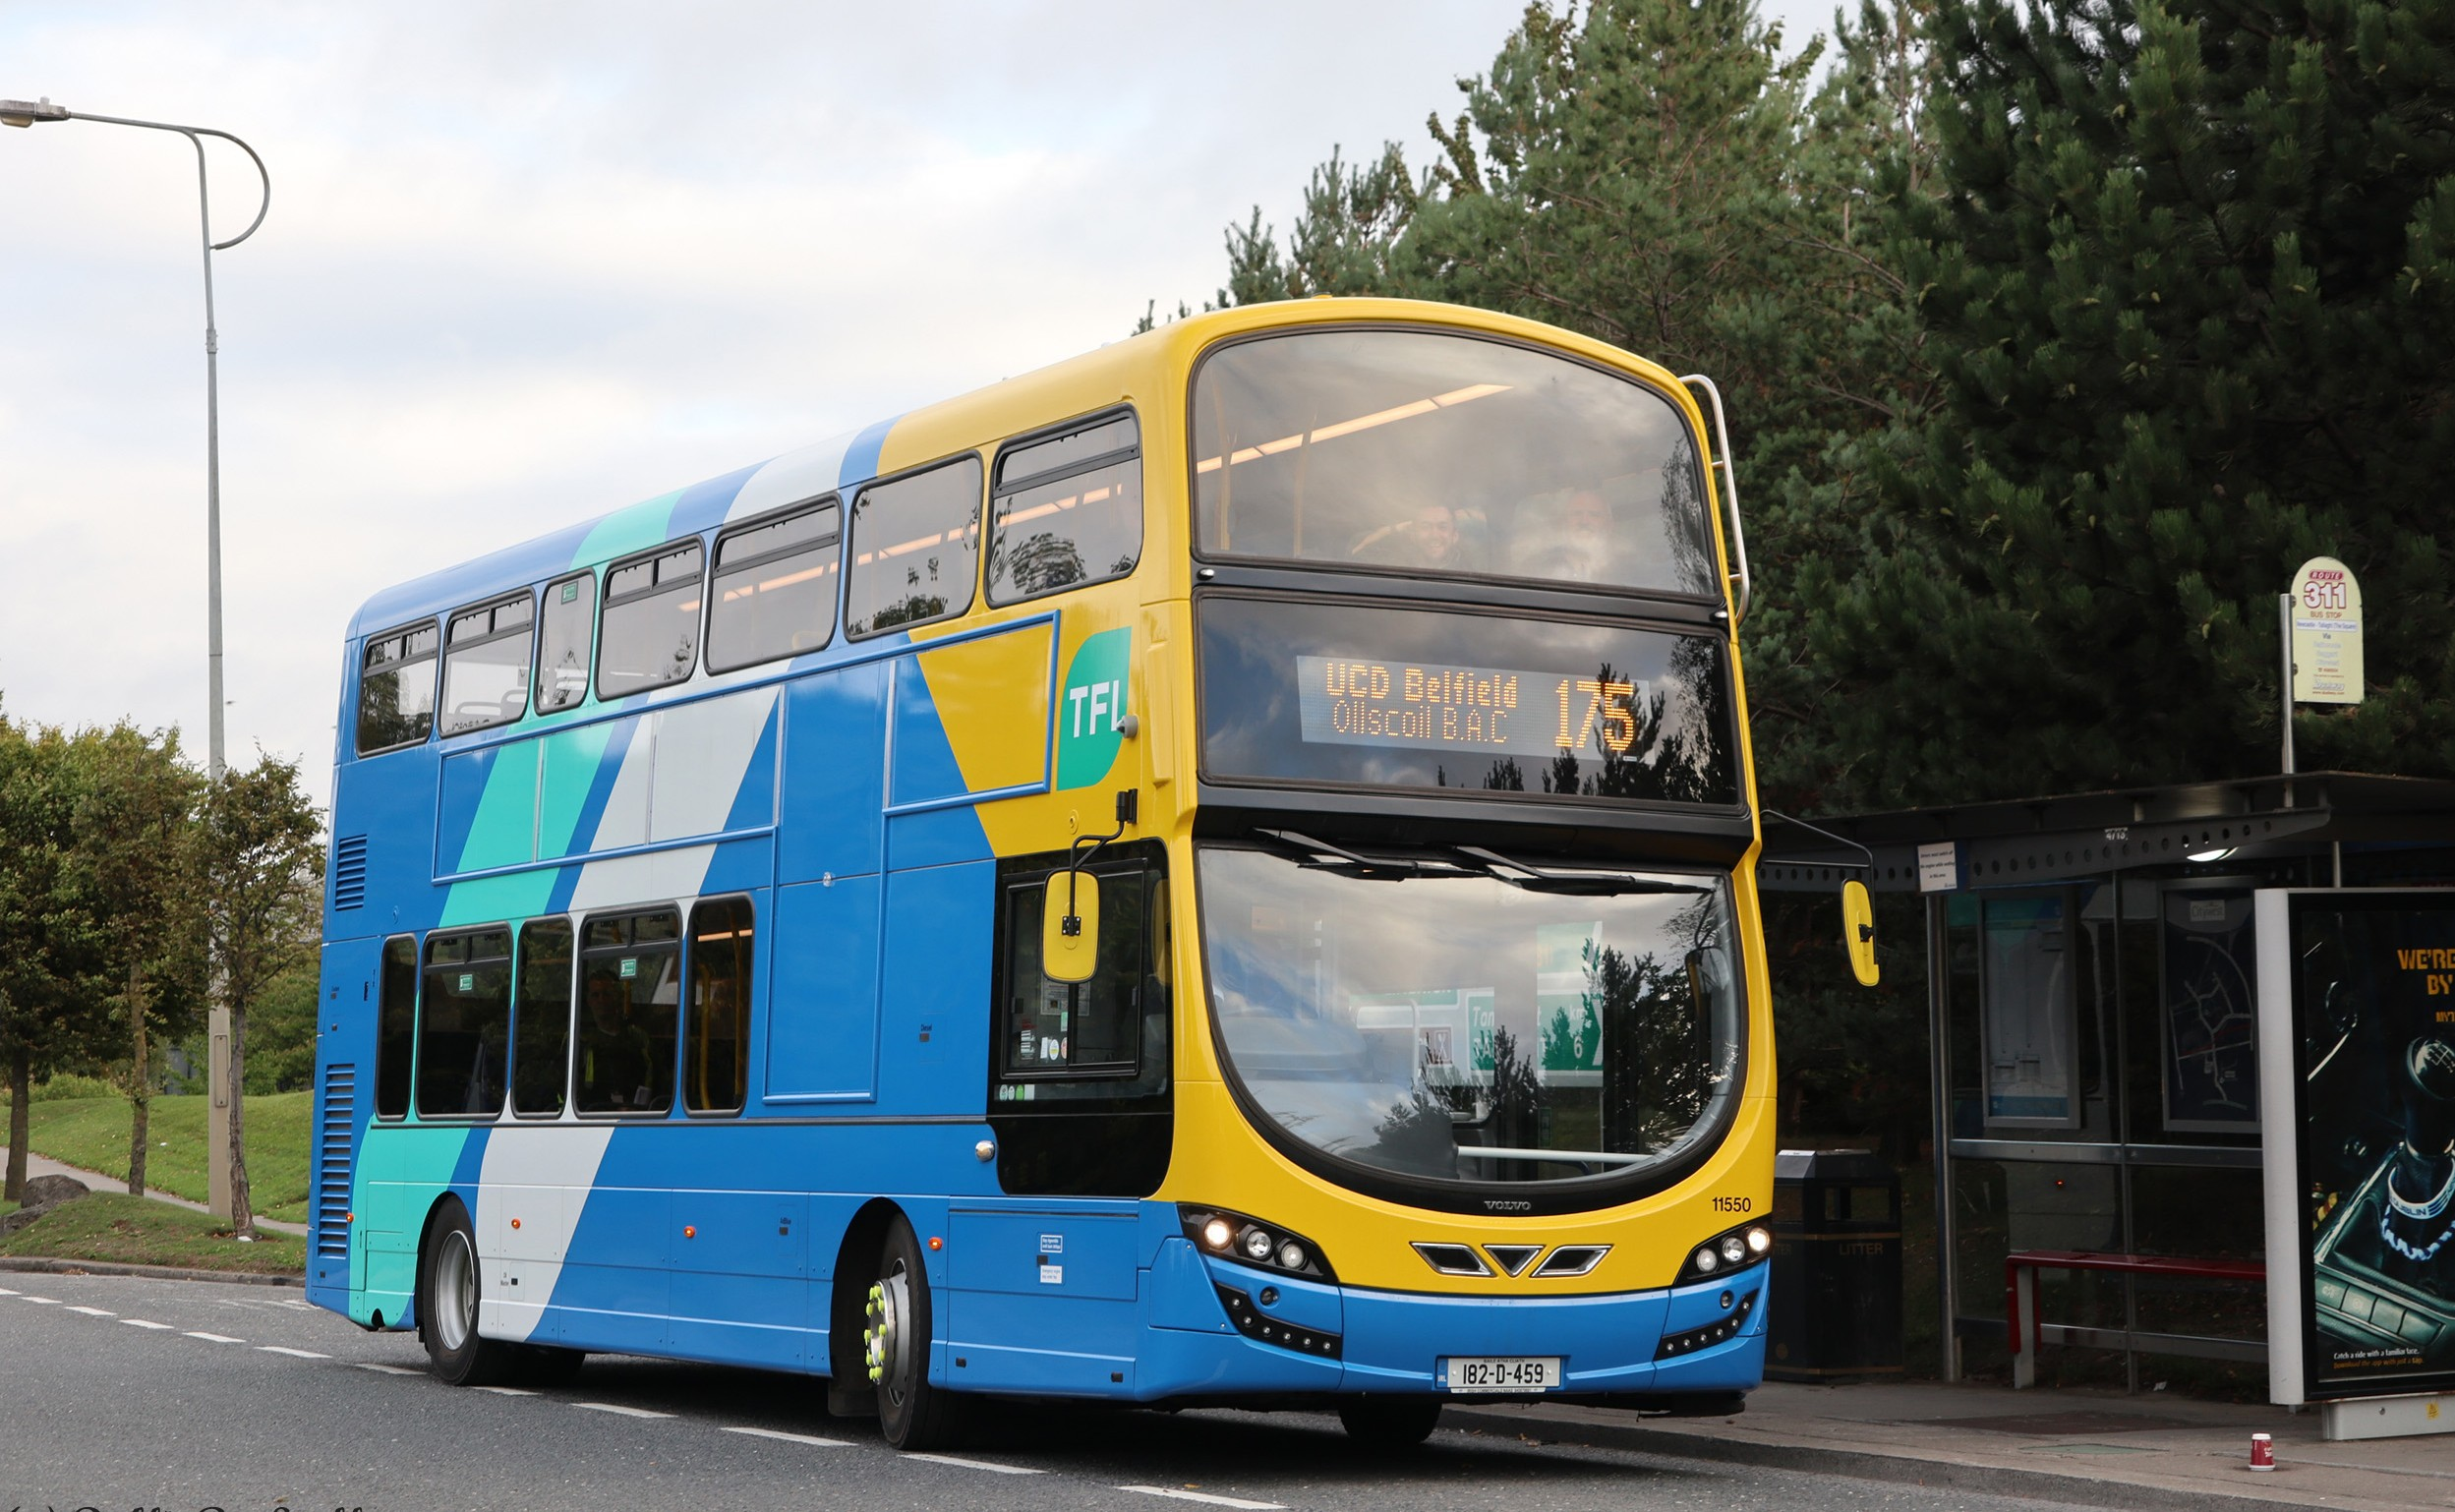 #AYearOfBuses 175: Citywest – UCD Belfield